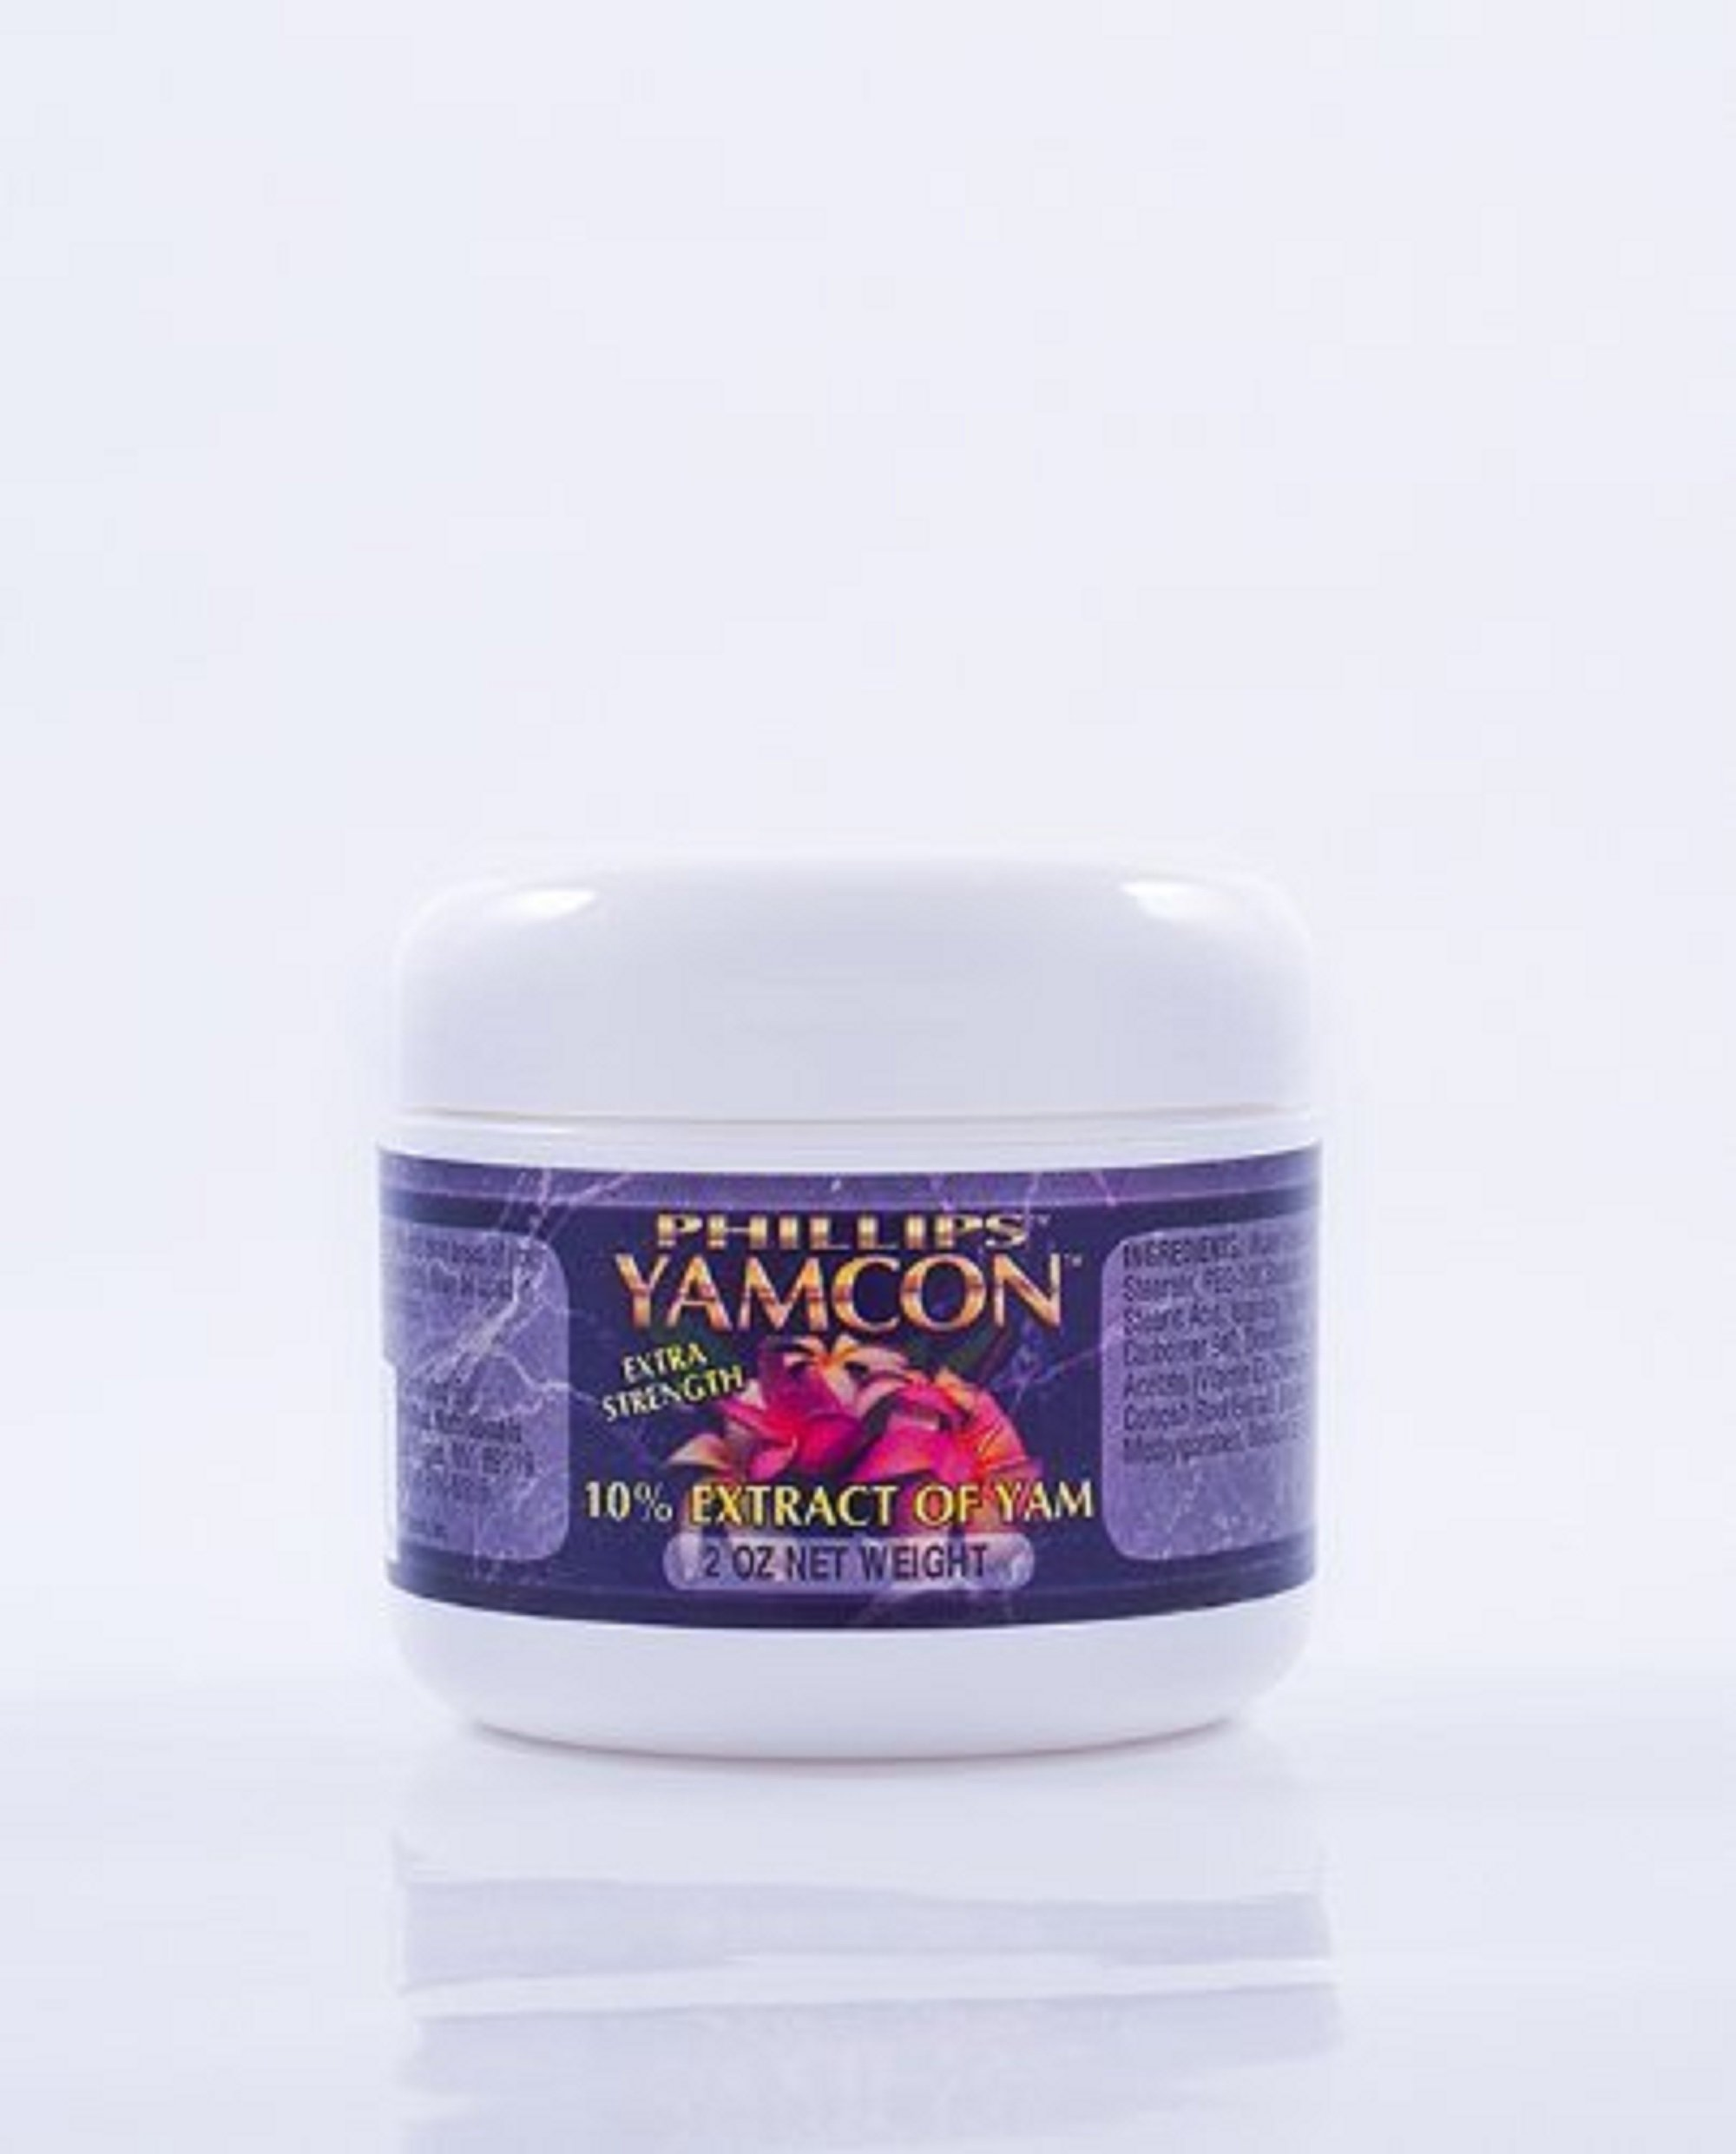 Yamcon Natural Bioidentical Progesterone Cream Extra Strength 10% 2 Oz.